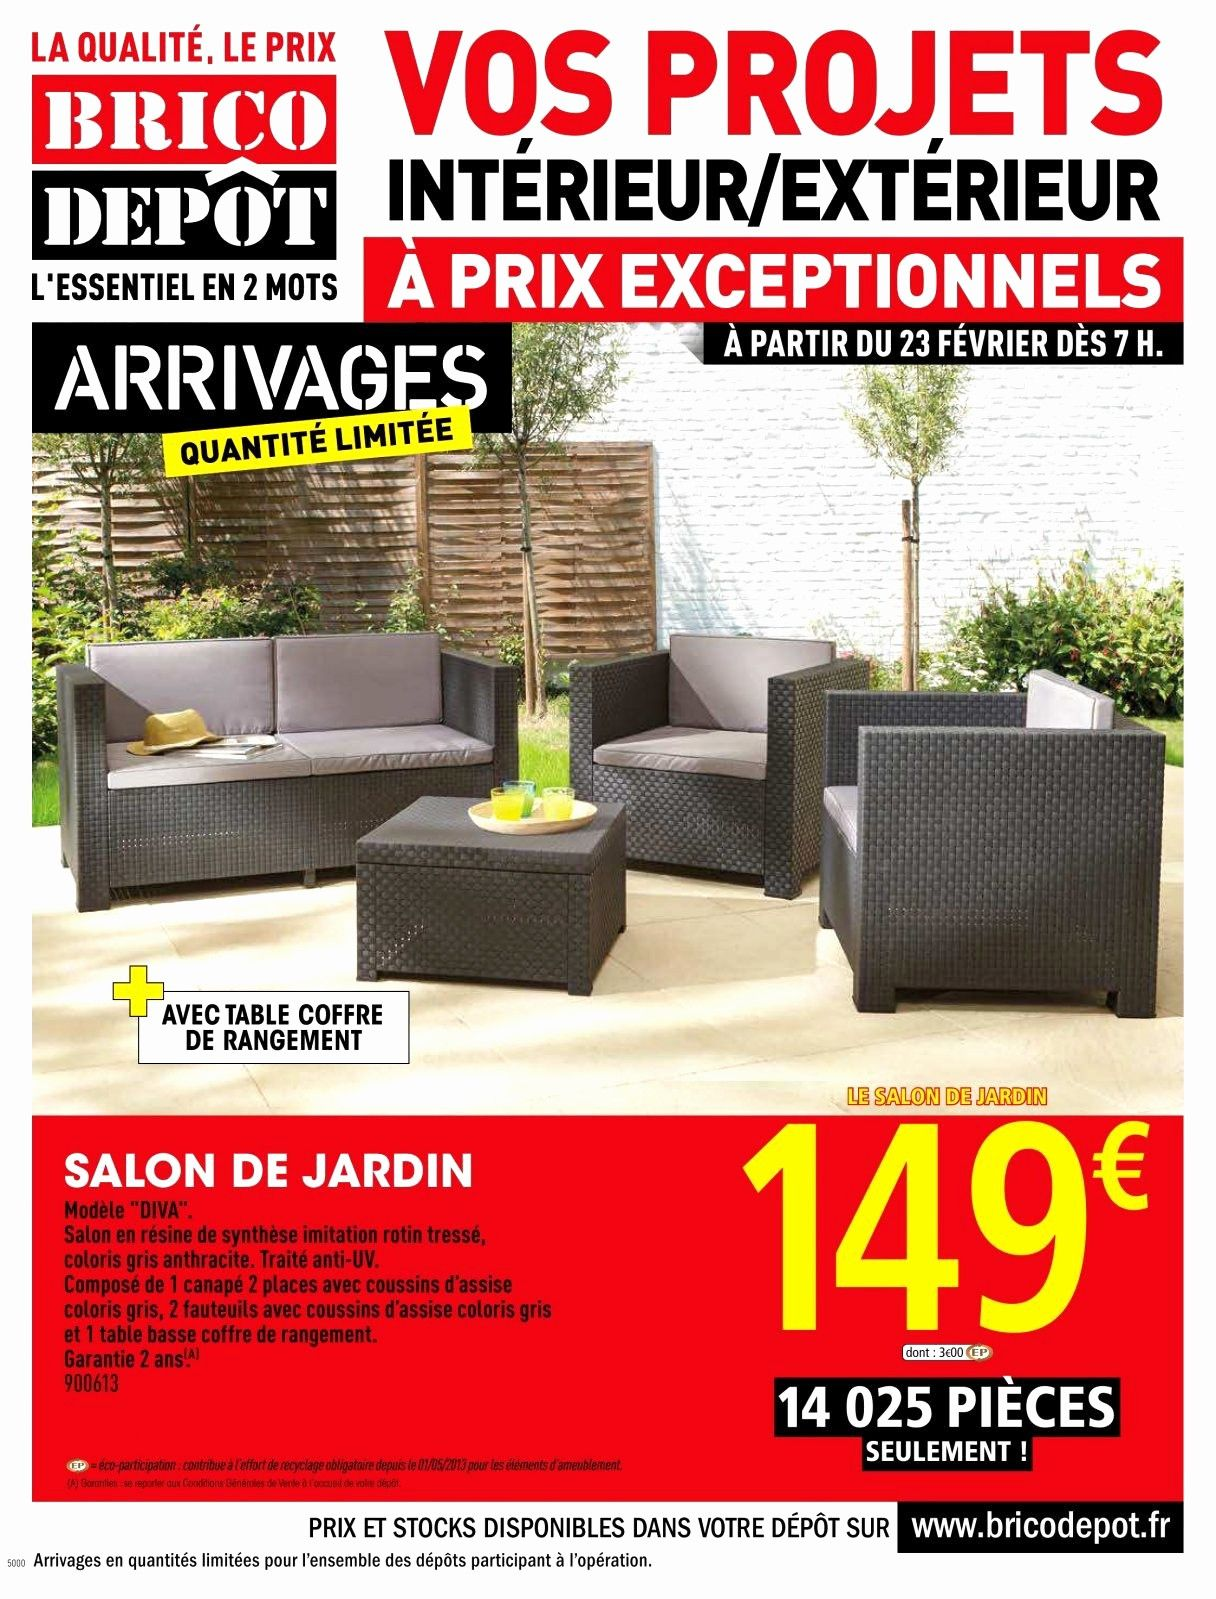 Elegant Barriere De Securite Brico Depot Salon De Jardin Salon De Jardin Allibert Salon De Jardin Resine